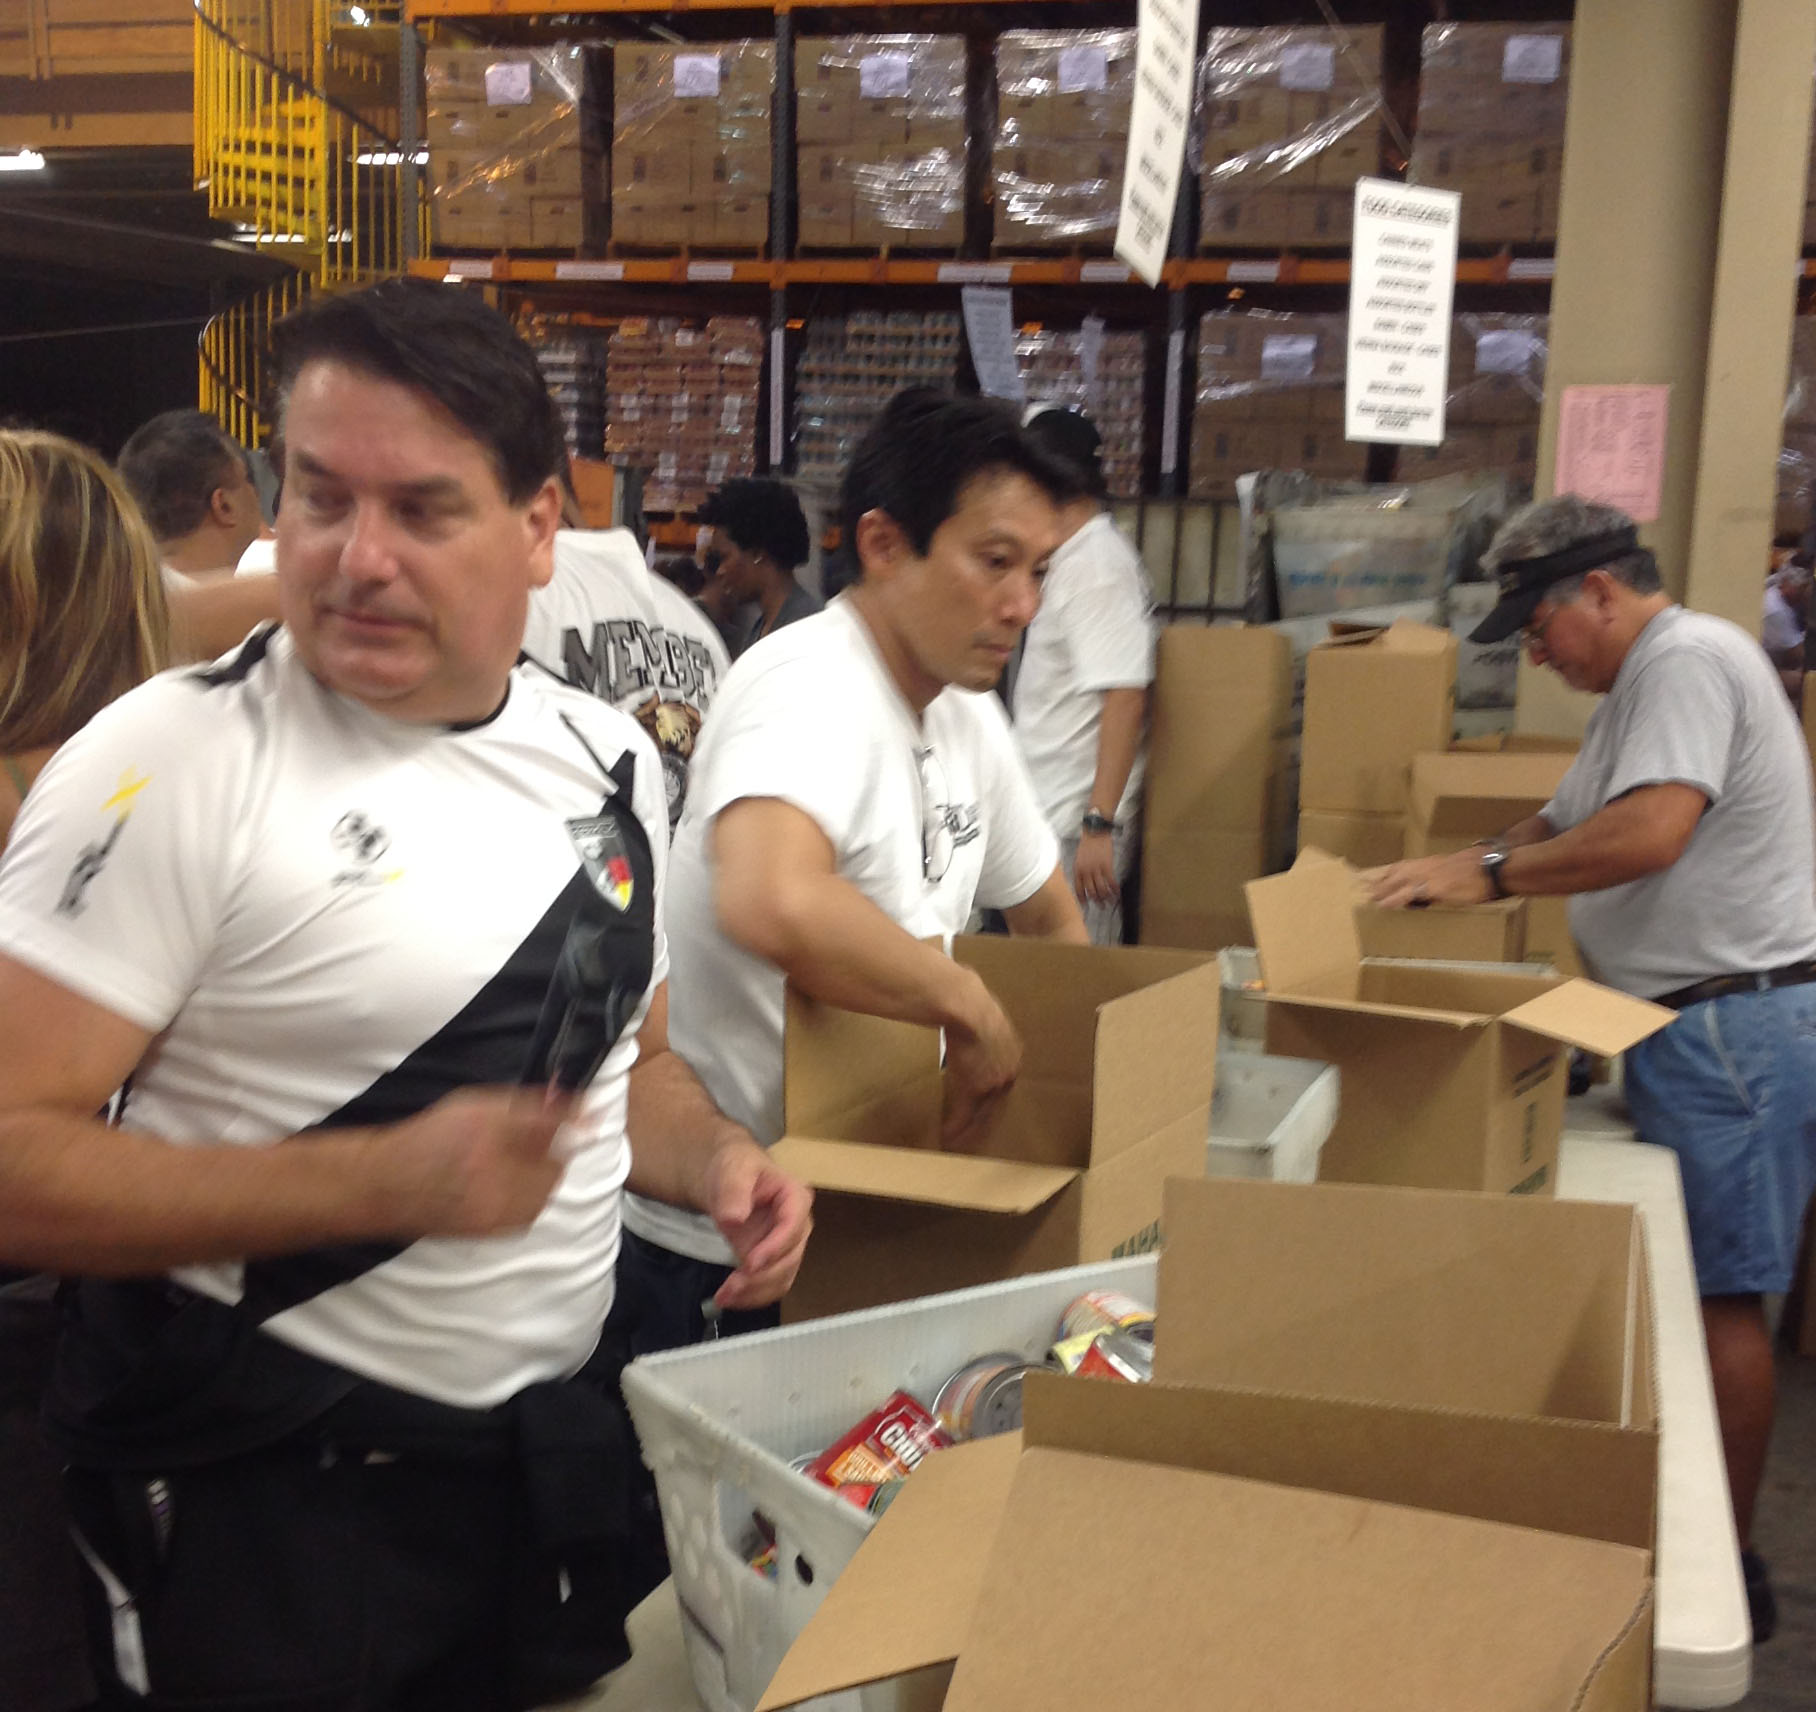 Anthony Daniel and Greg Suenaga sorting canned goods into boxes at the food drive